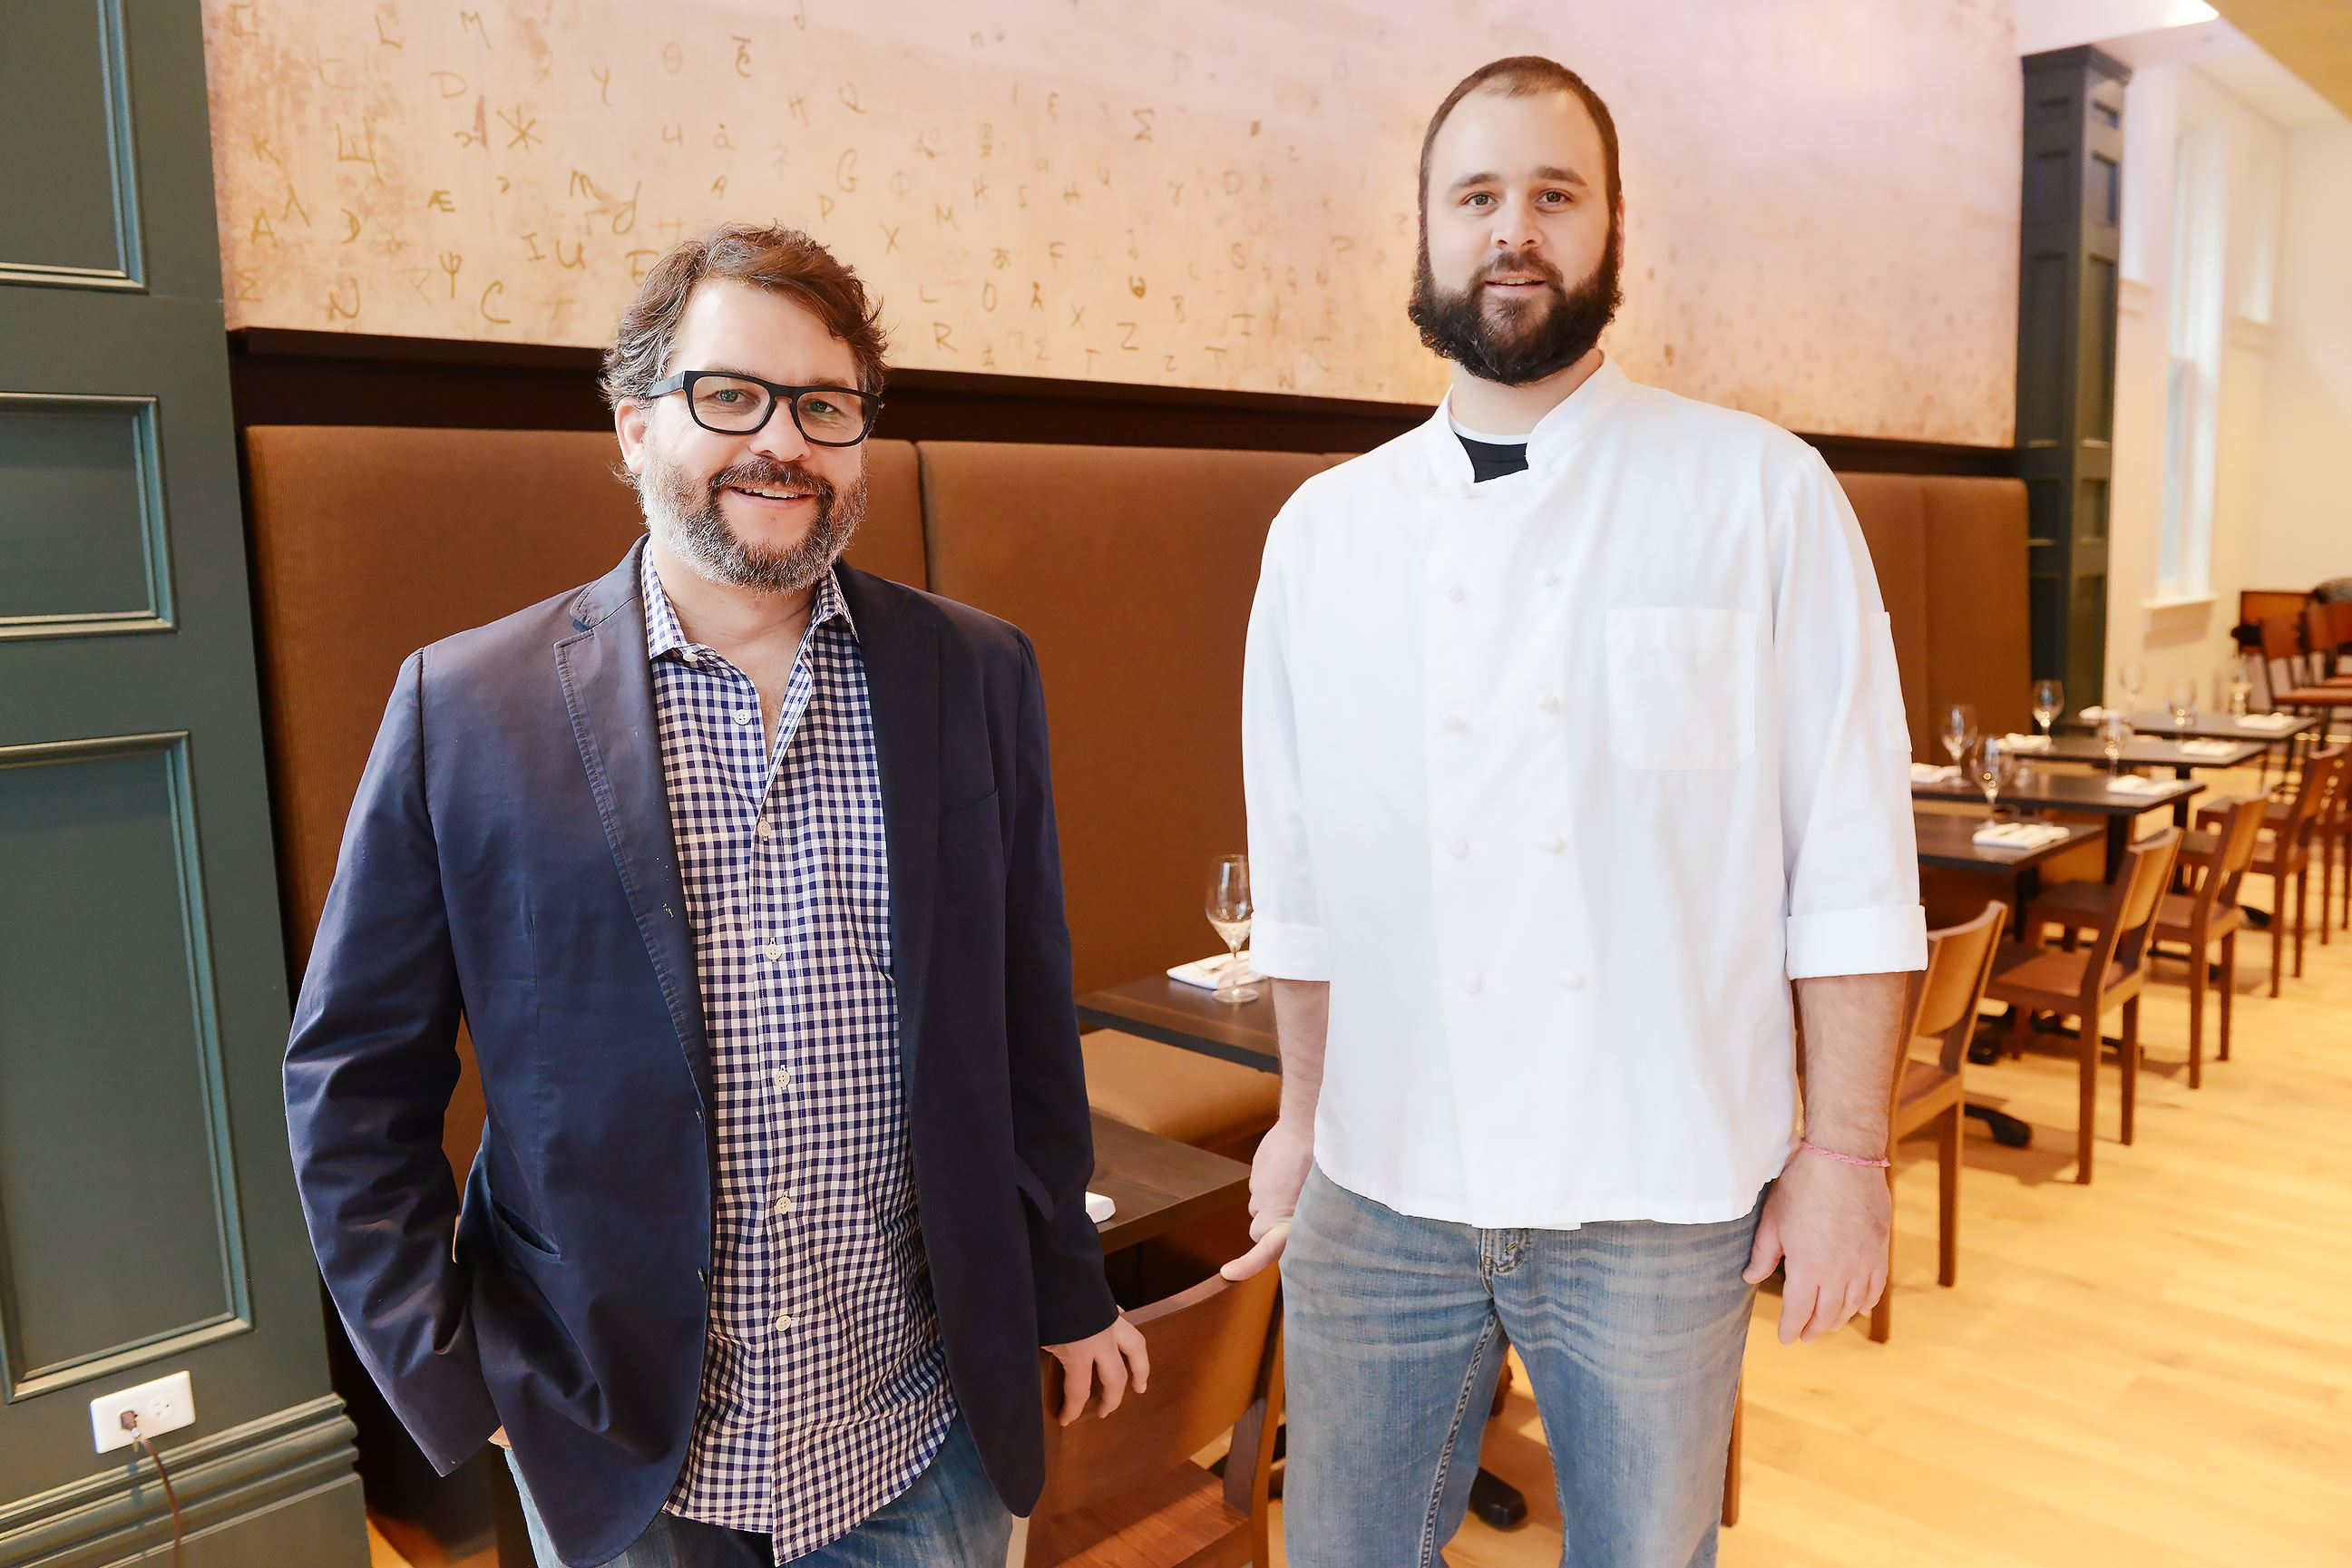 20170117rldCasellula10 Owner Brian Keyser, left, and executive chef Andrew Hill inside Casellula @ Alphabet City, the new restaurant at City of Asylum on the North Side.